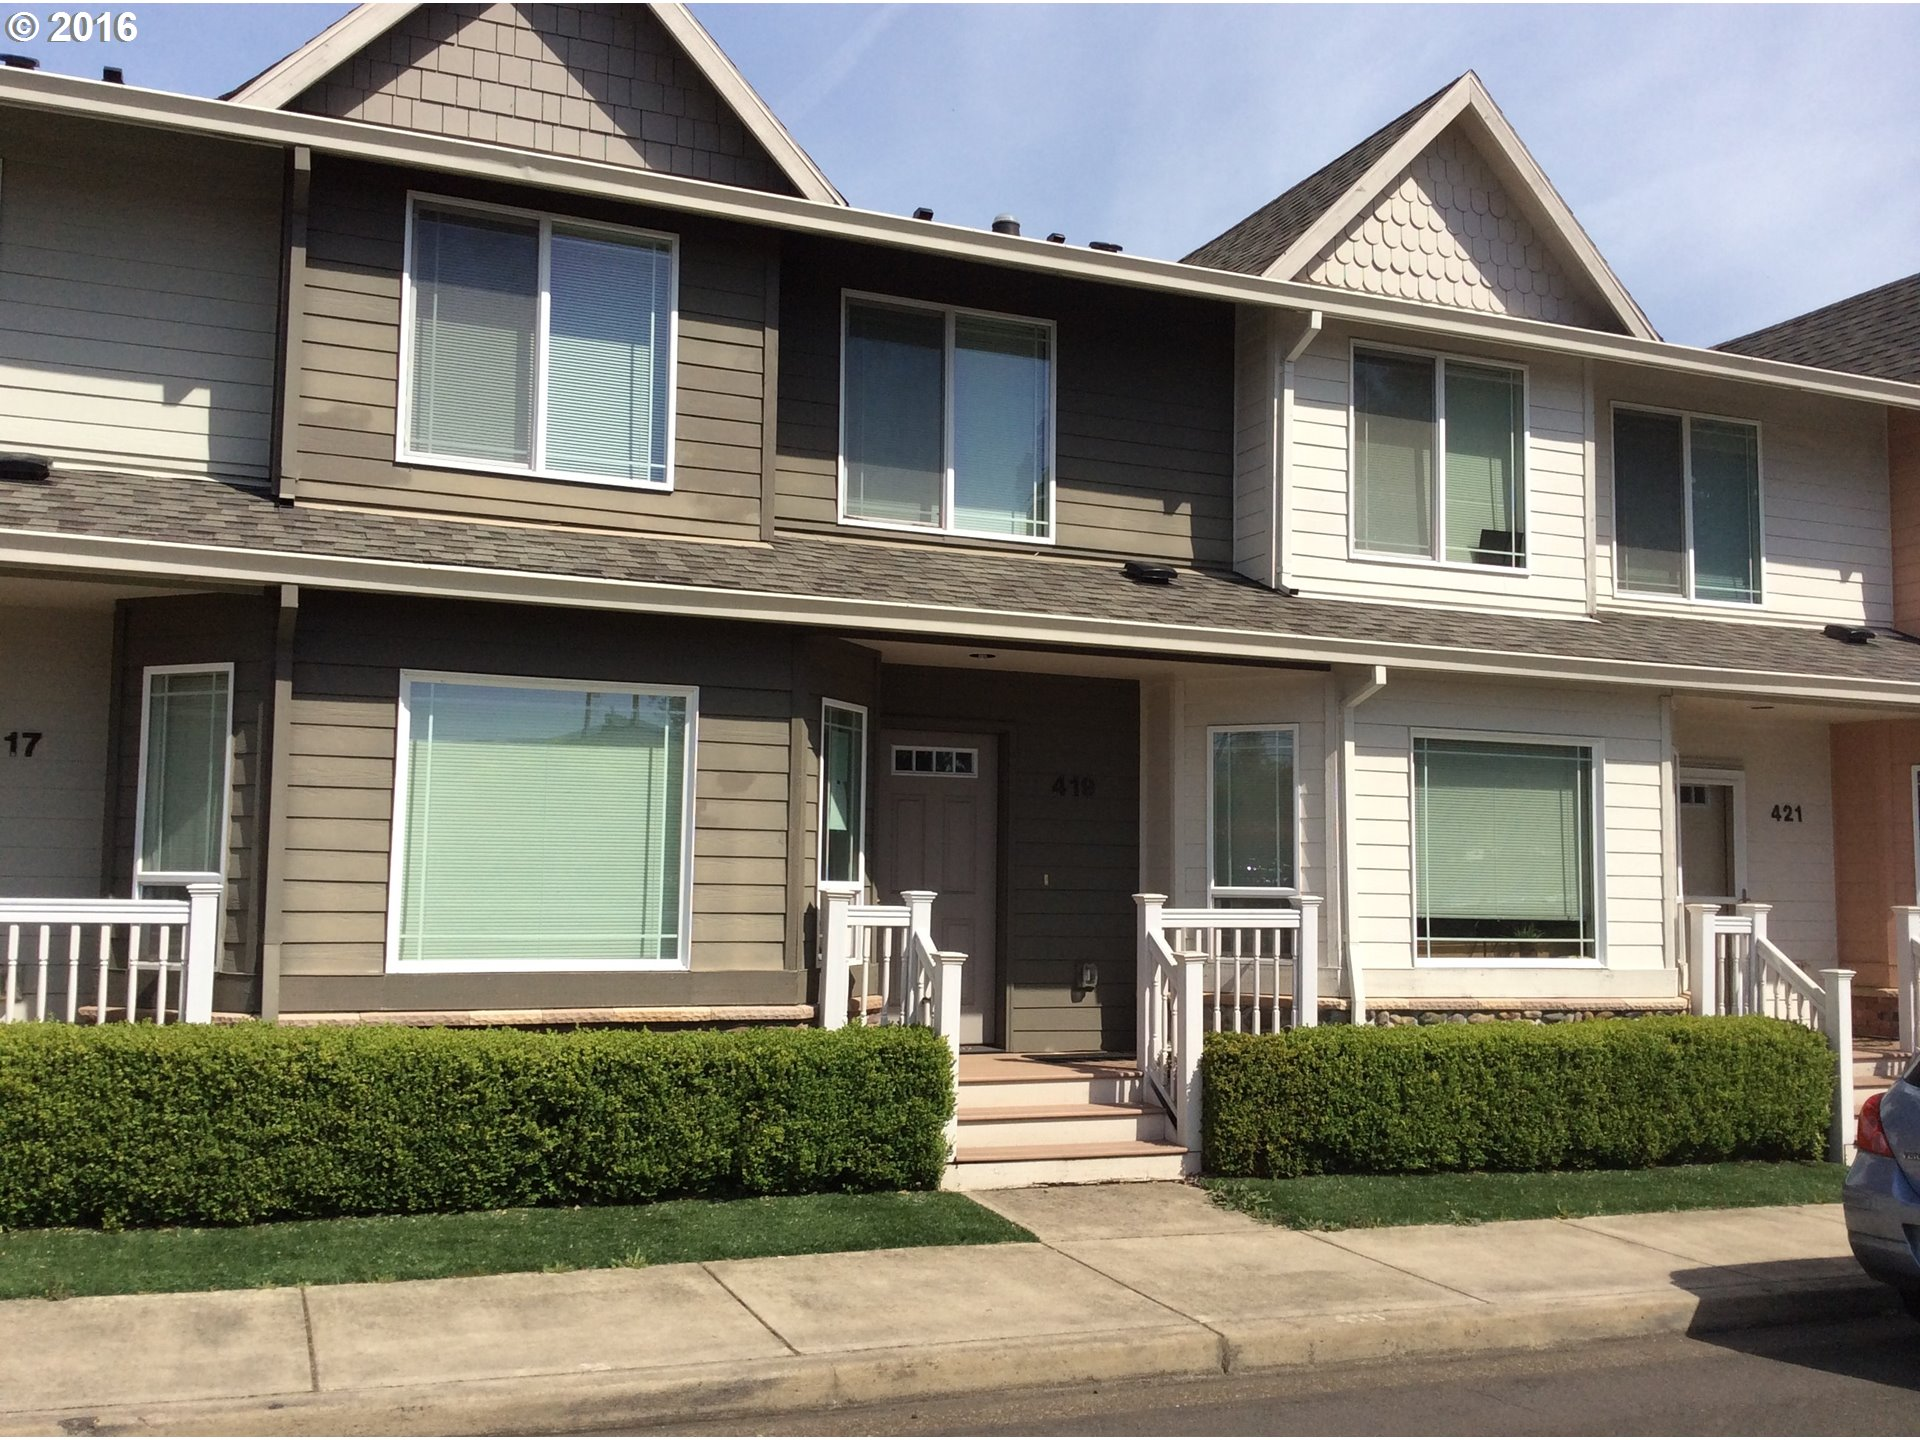 19384 silverfox pkwy oregon city or 97045 house for sale in oregon city or